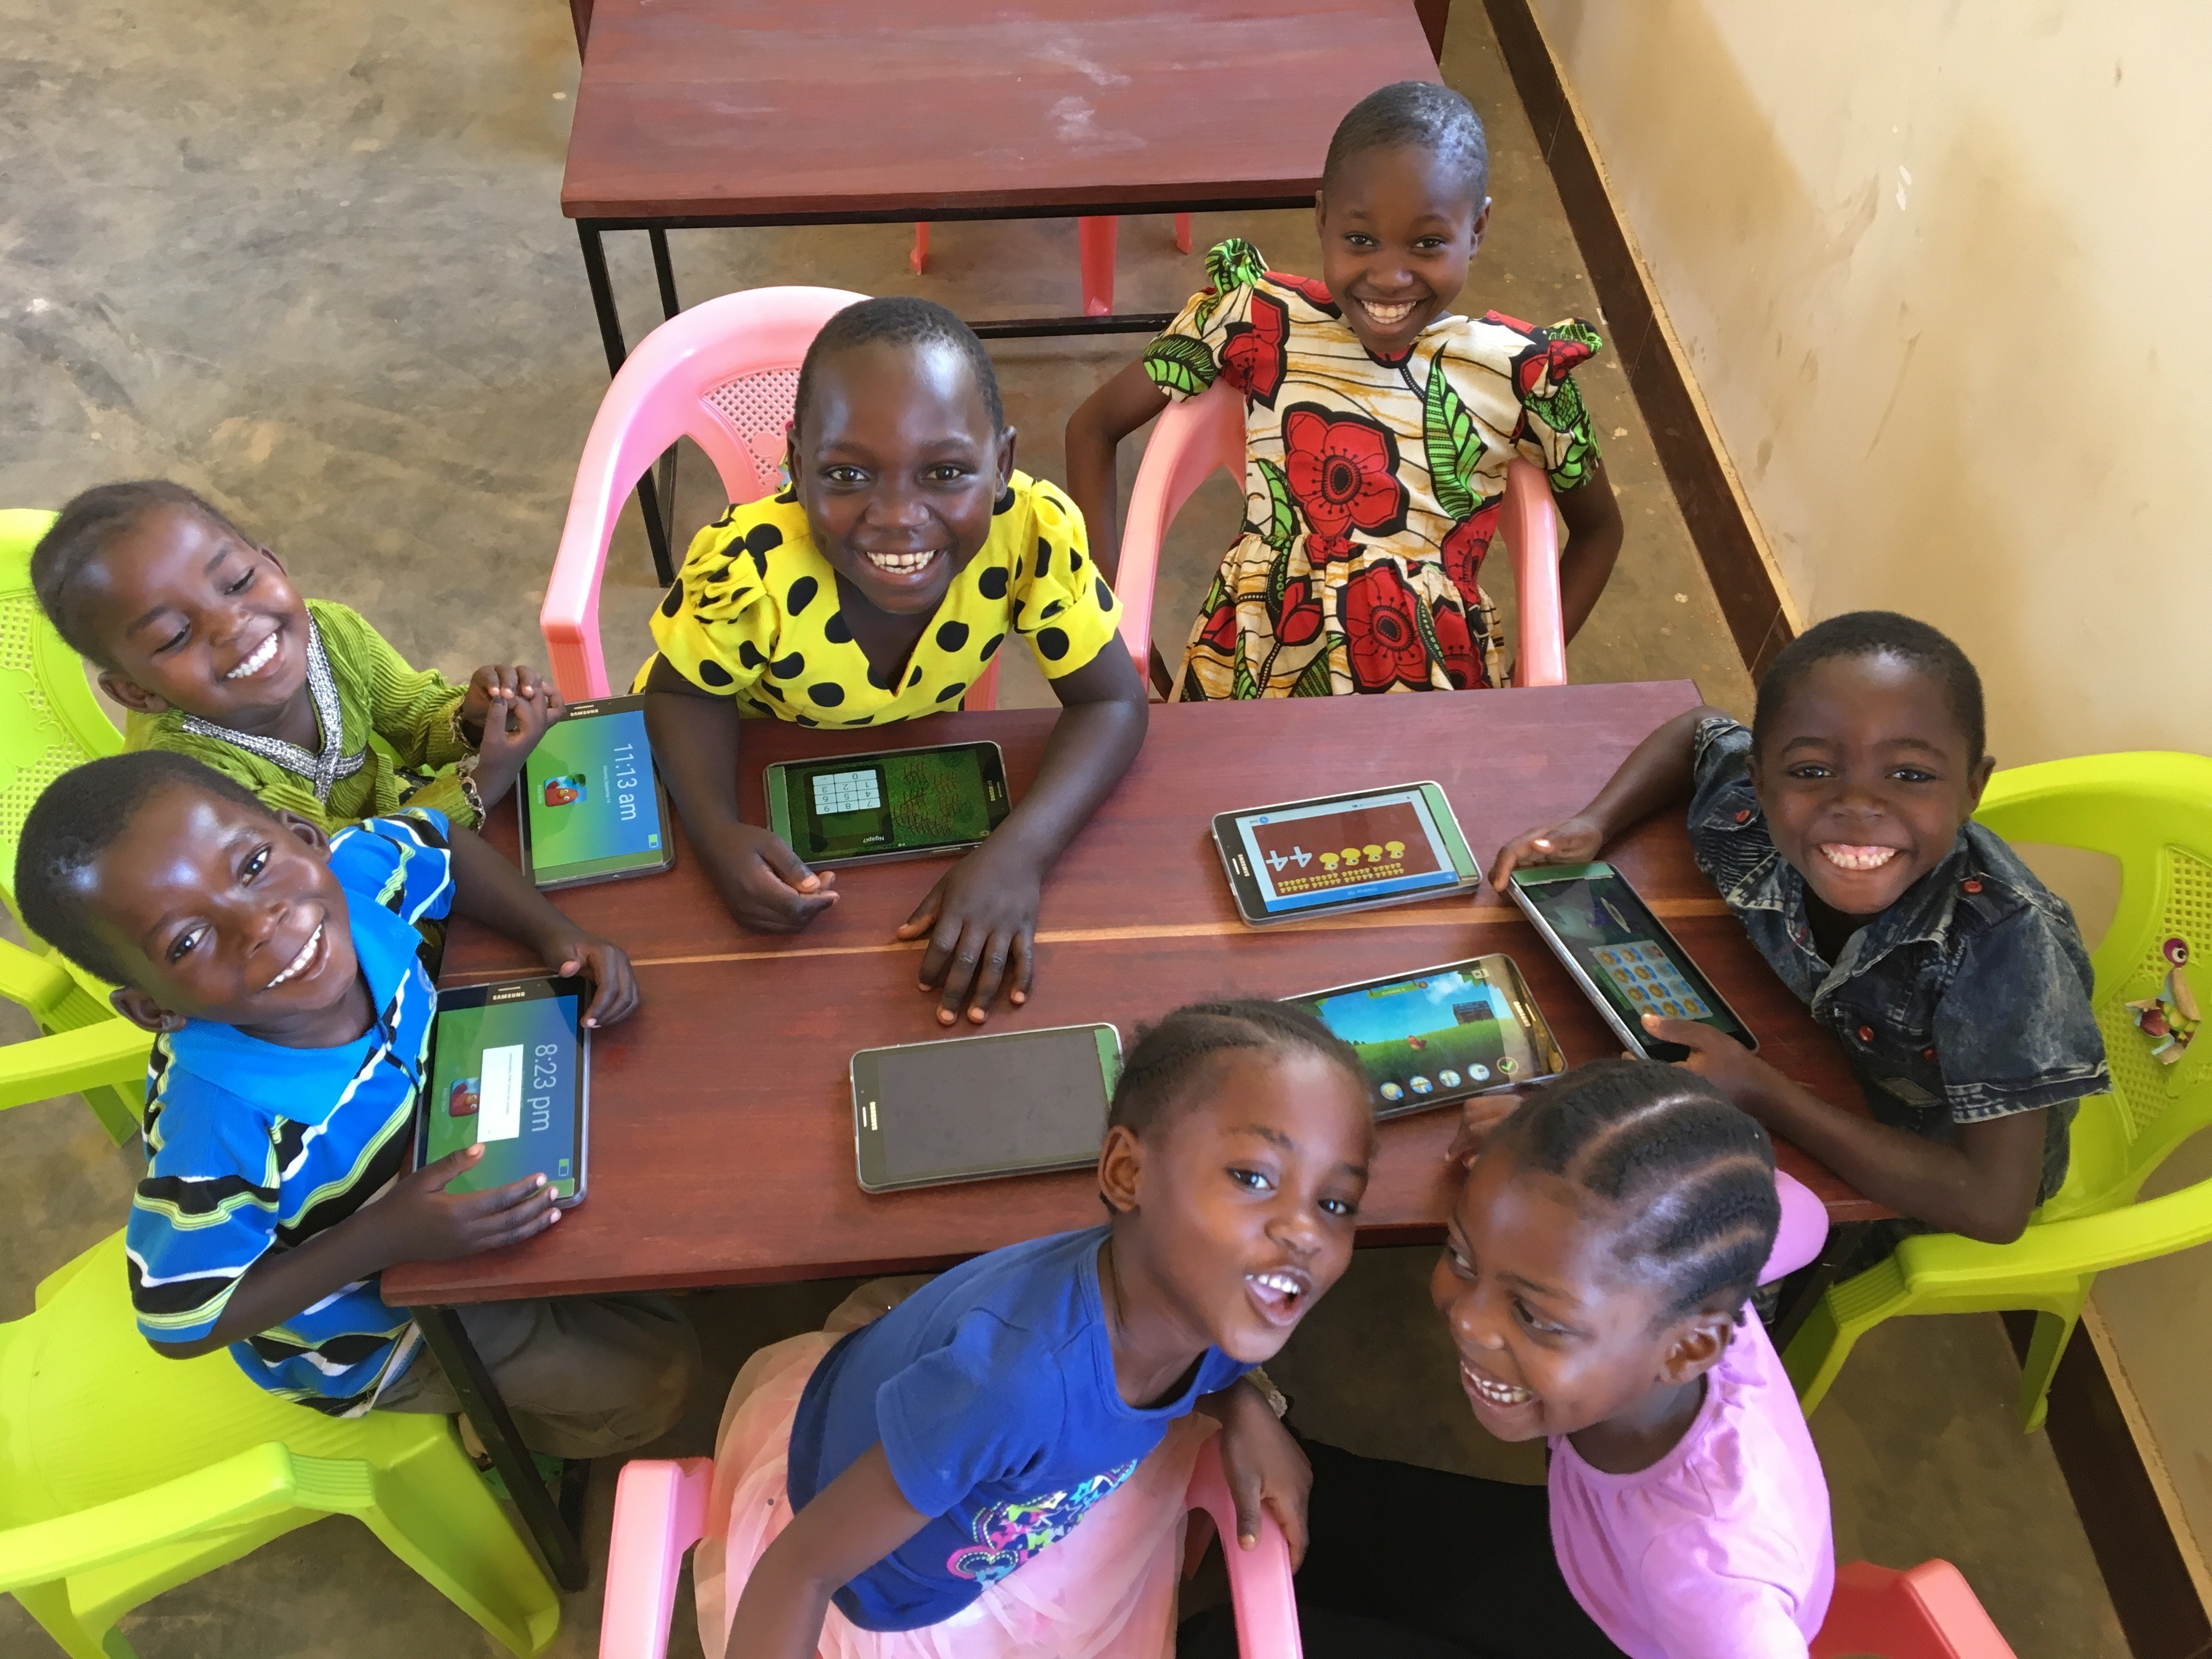 Enuma creates learning apps for all children, including those with special needs